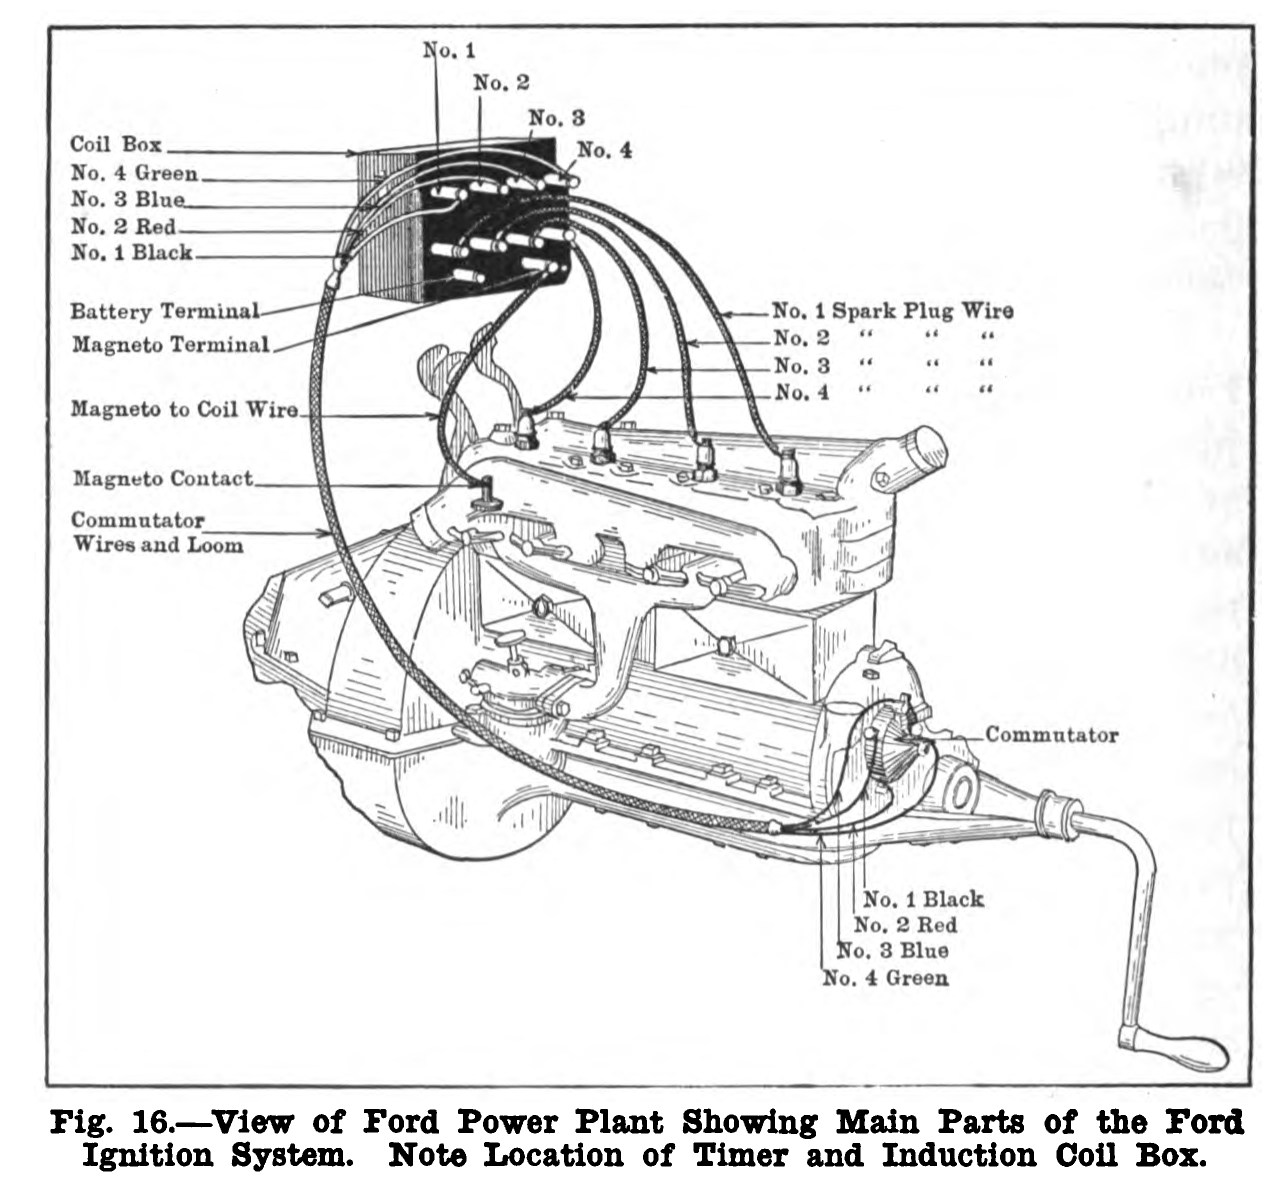 1915 ford model t wiring diagram 1979 toyota land cruiser 1923 best library 2017 01 12 18 53 39 diagrams 15461195 a